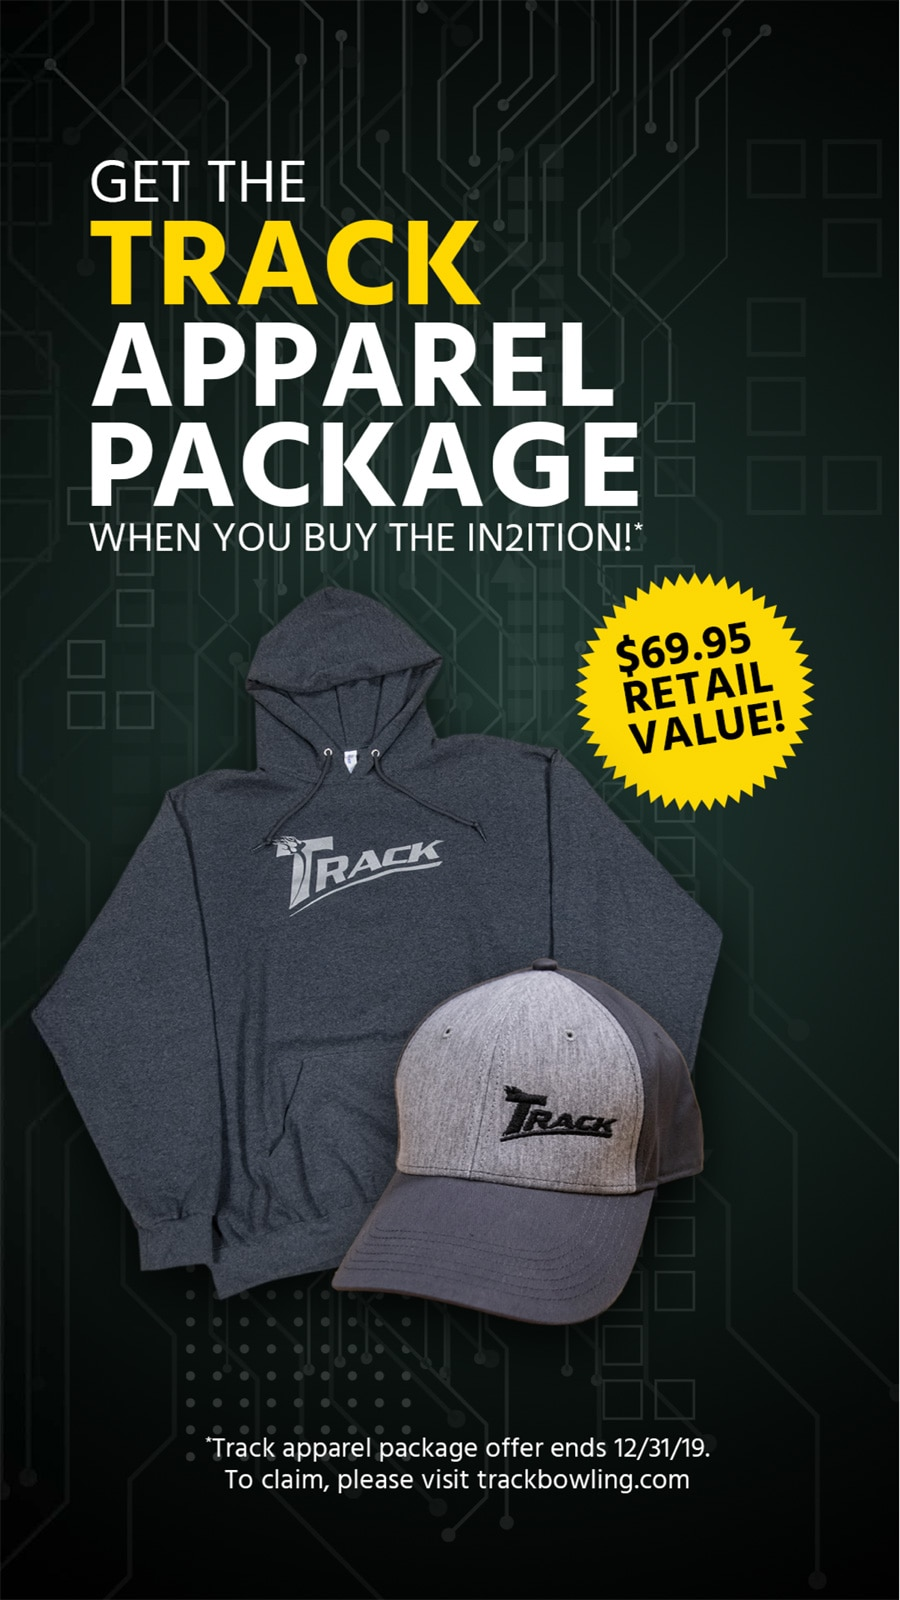 in2ition-track-apparel-package.jpg